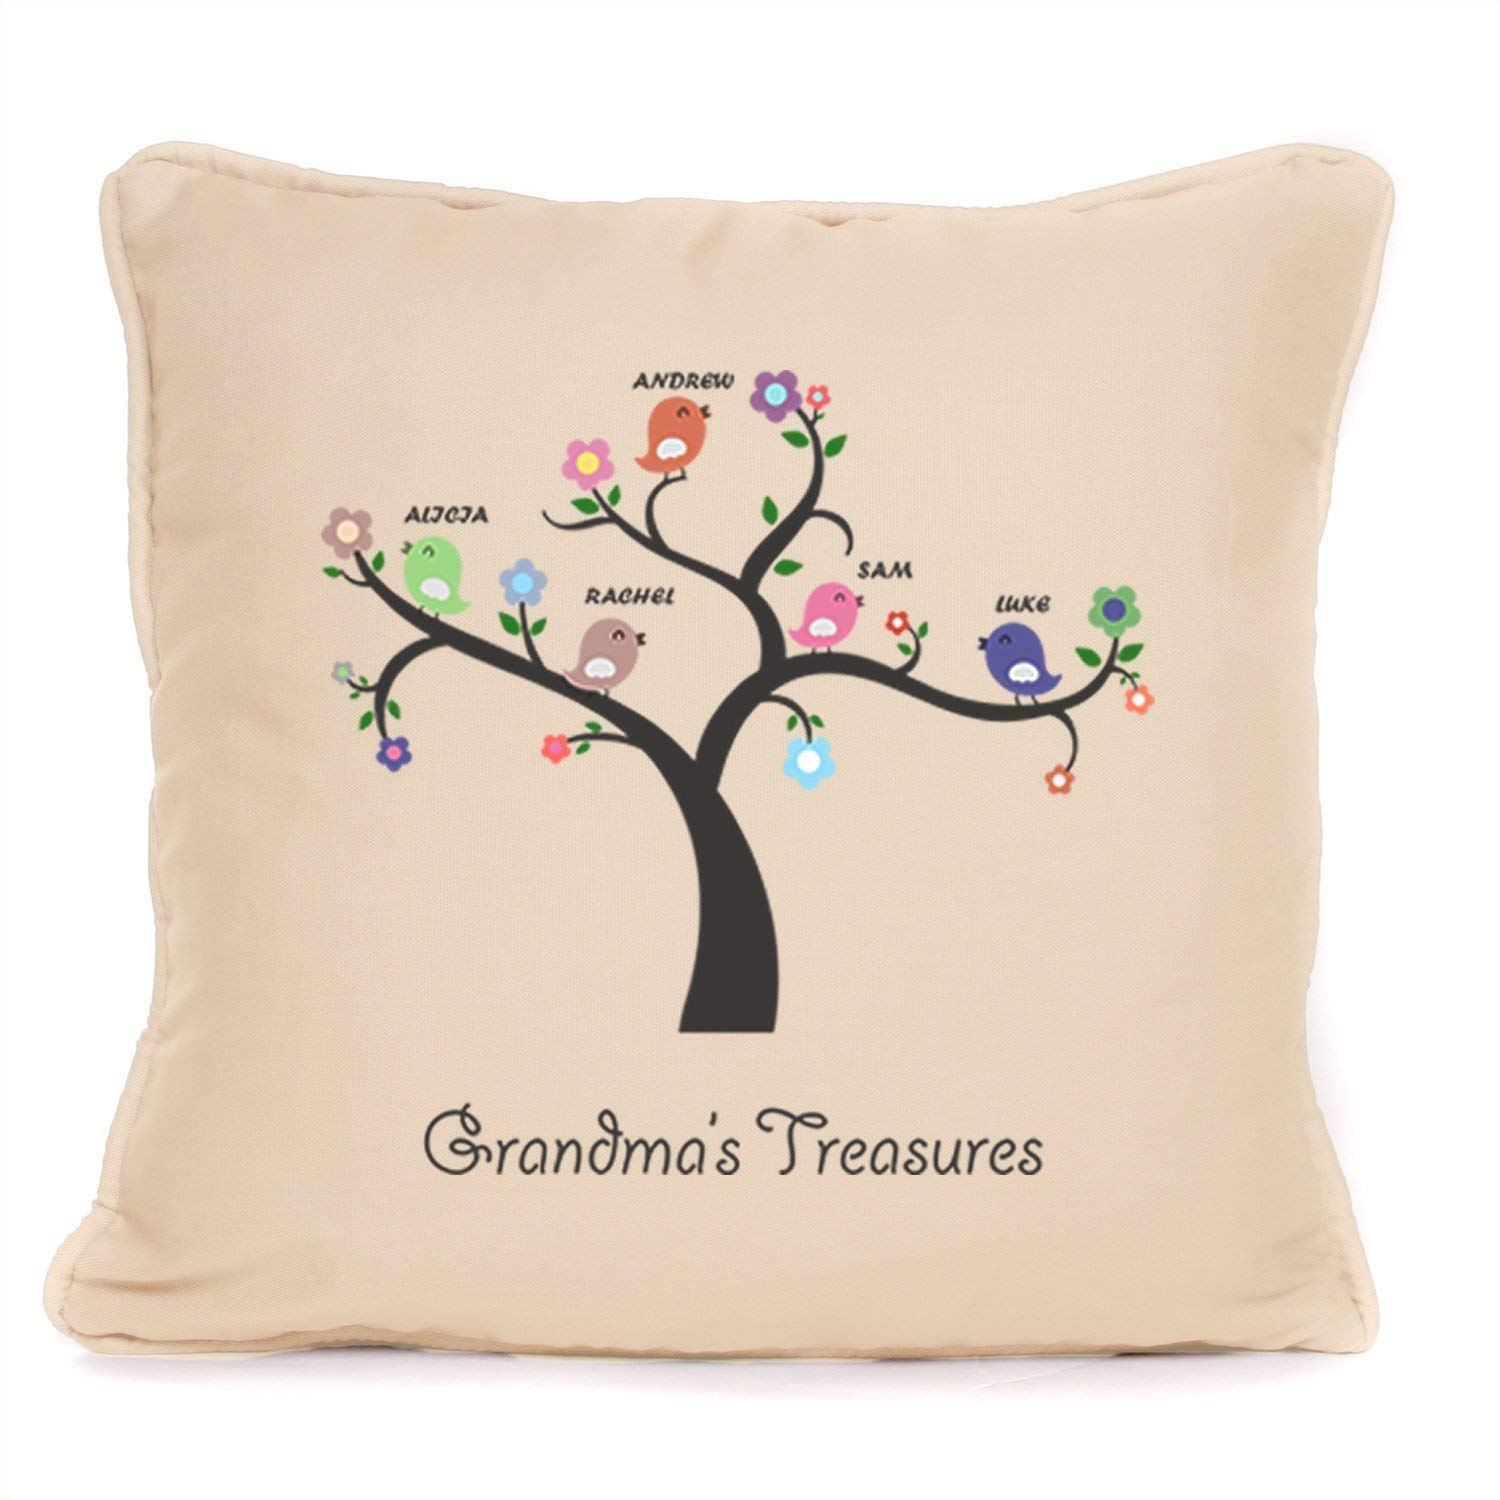 Personalized Cushion Pillow Cover Gift for Grandma - Grandma's Treasures Grandchildren - 18 x 18 Inch - Perfect Gift For Grandma For Mothers Day Birthday Christmas Or To Say Thank You